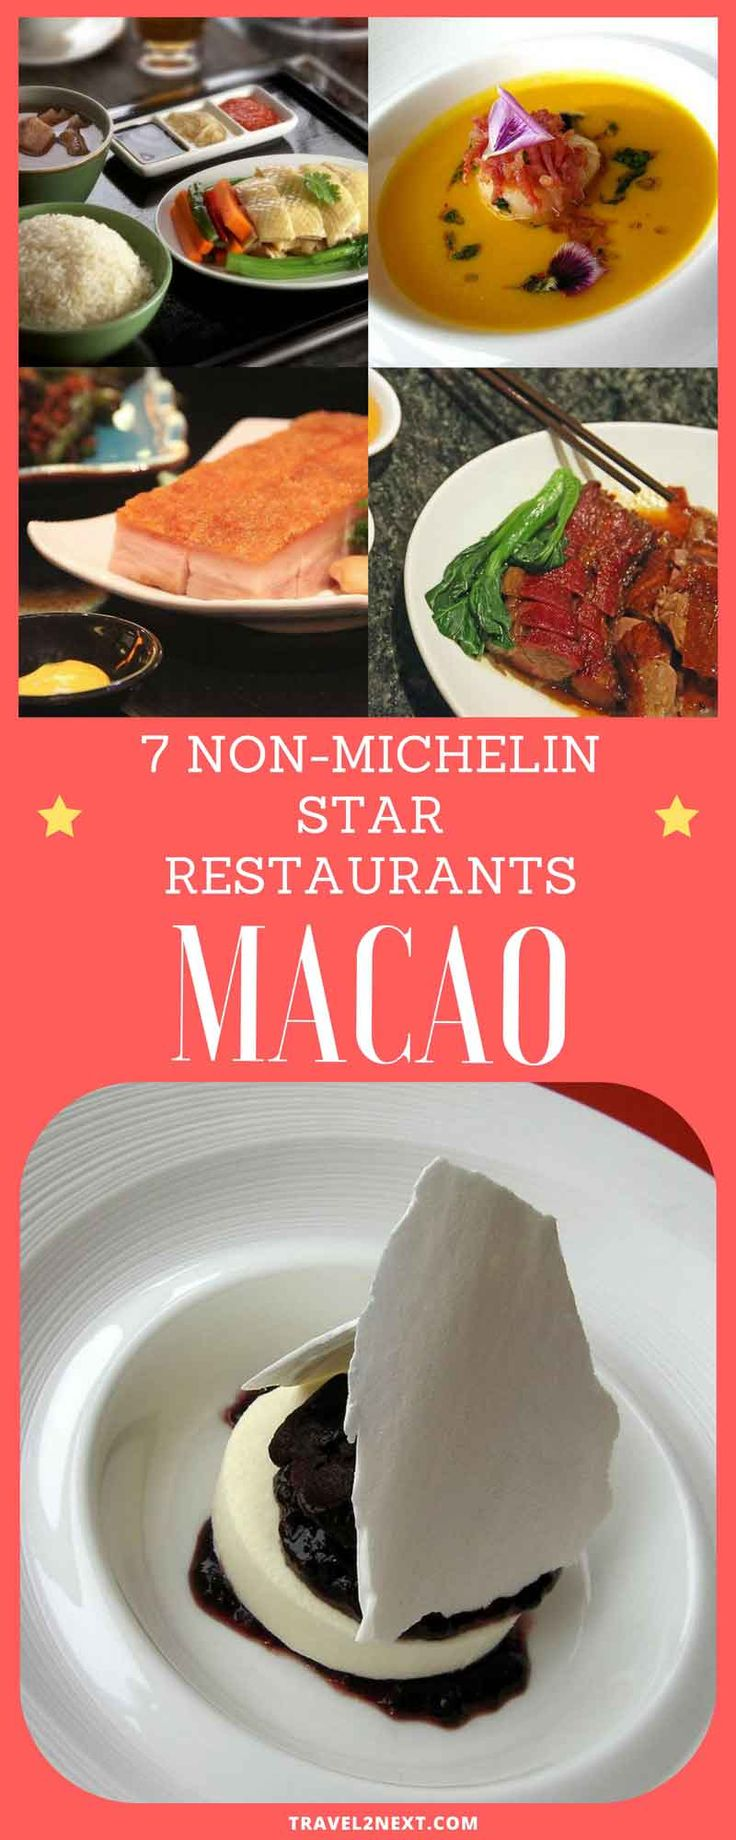 The Best Michelin Star Ideas On Pinterest Michelin Star Food - Top 10 expensive michelin starred restaurants world